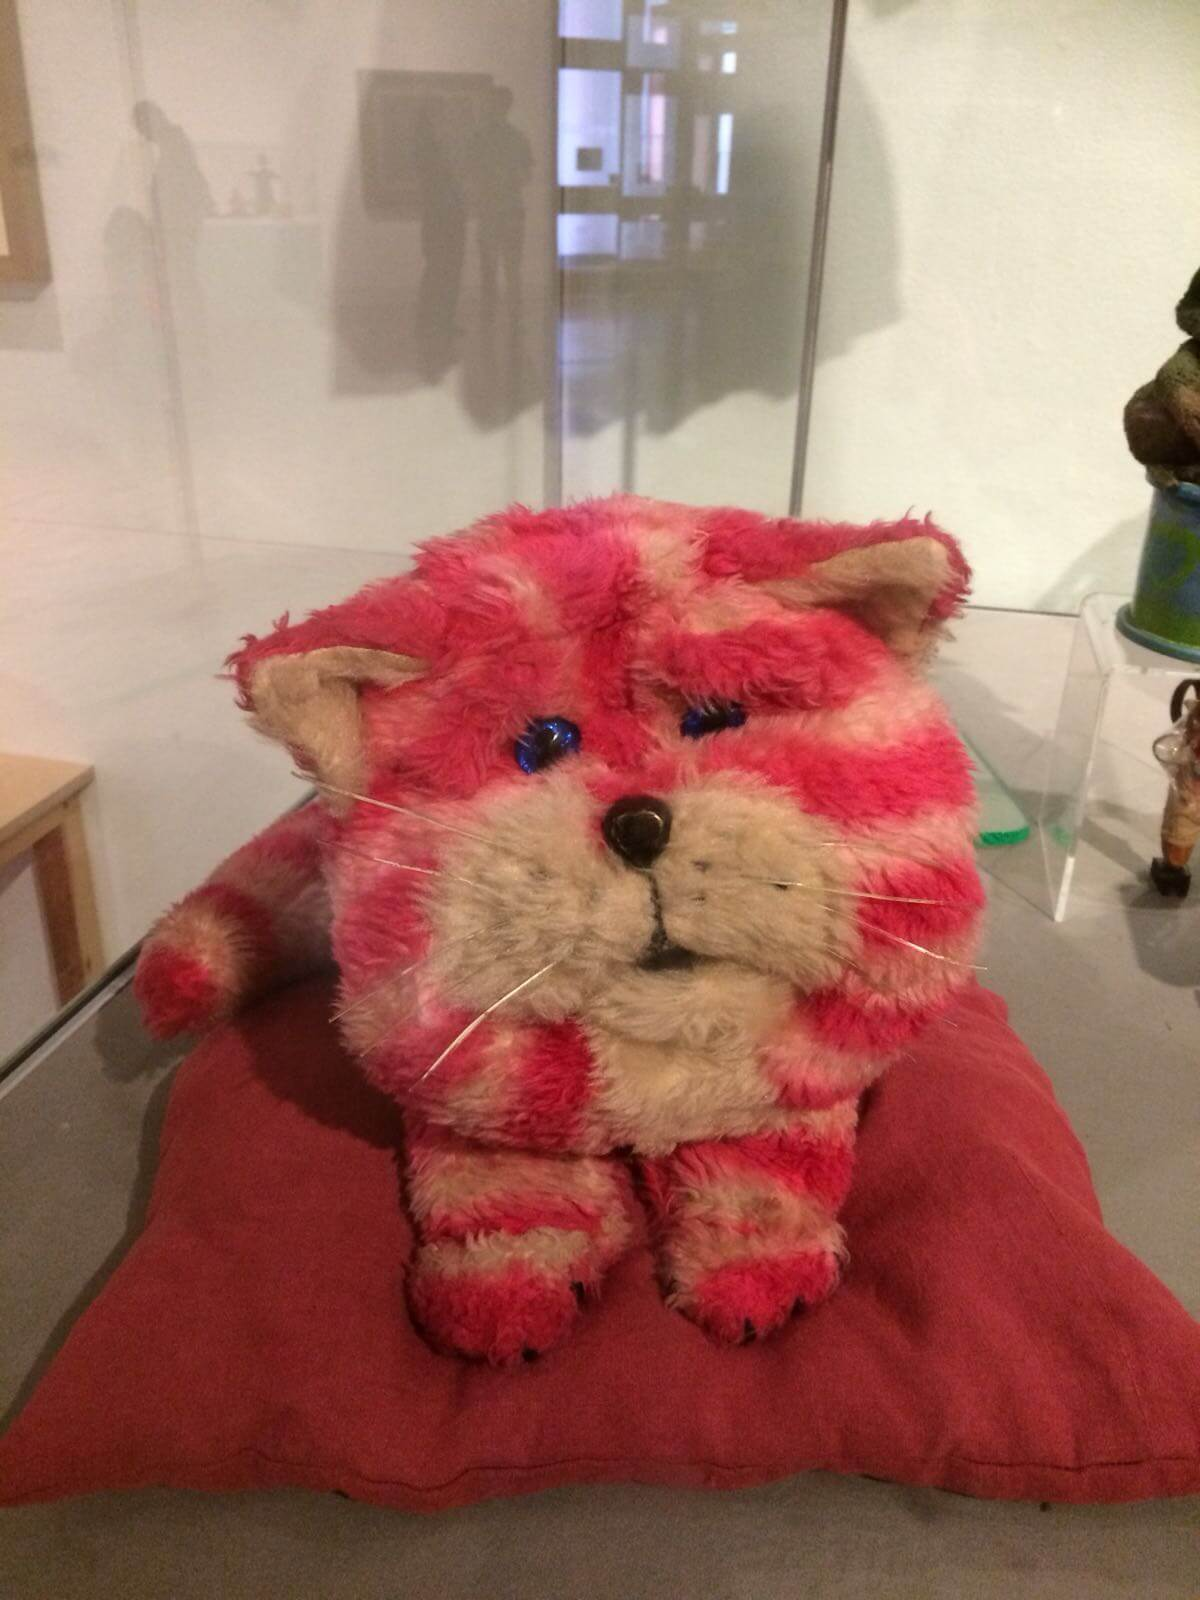 Clangers and Bagpuss exhibition in Hull